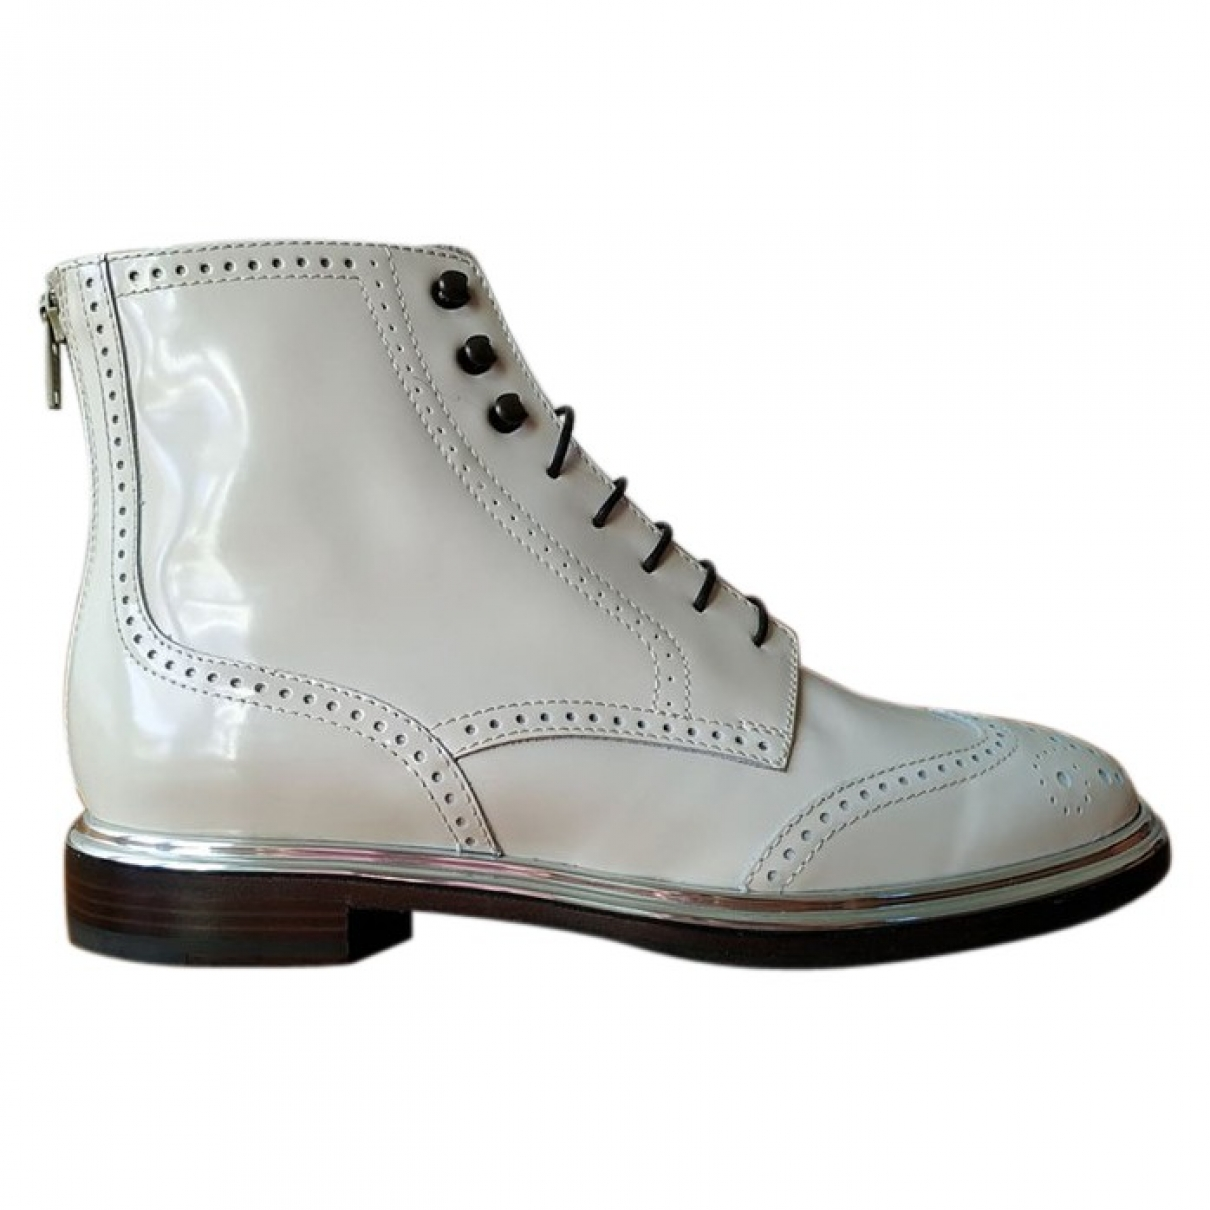 Agl \N Ecru Patent leather Ankle boots for Women 37 EU